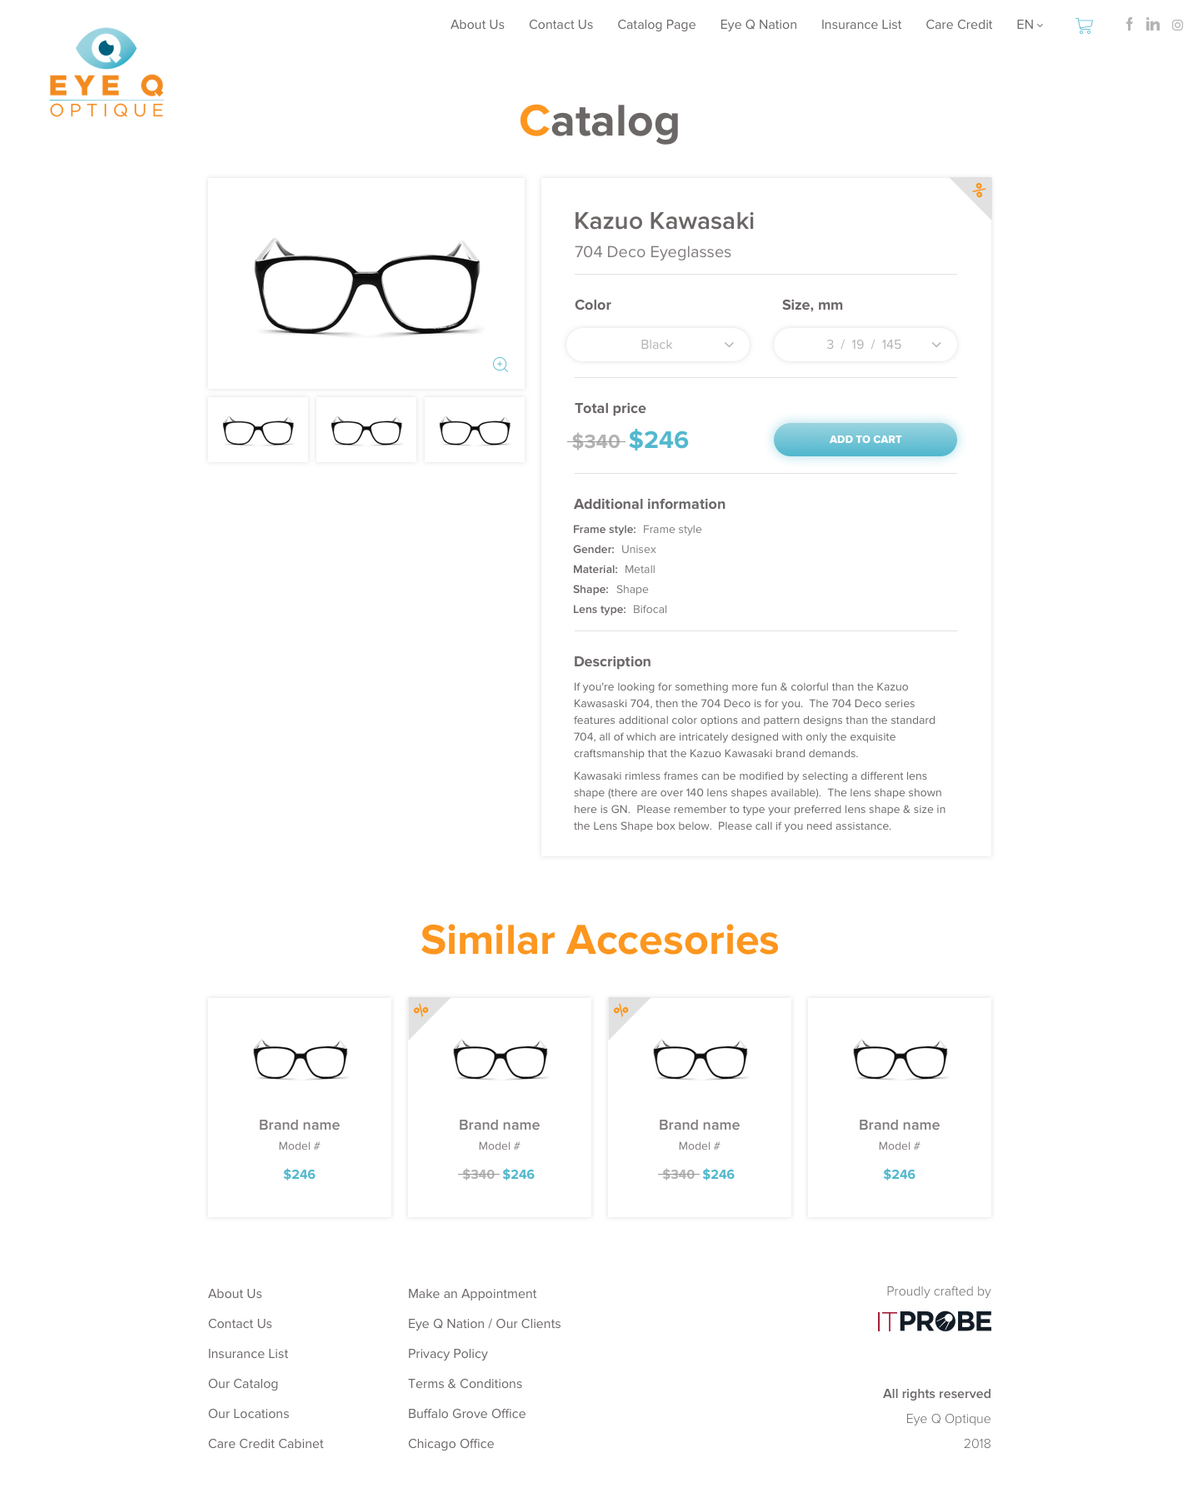 Eye Q Optique - Product Page Design